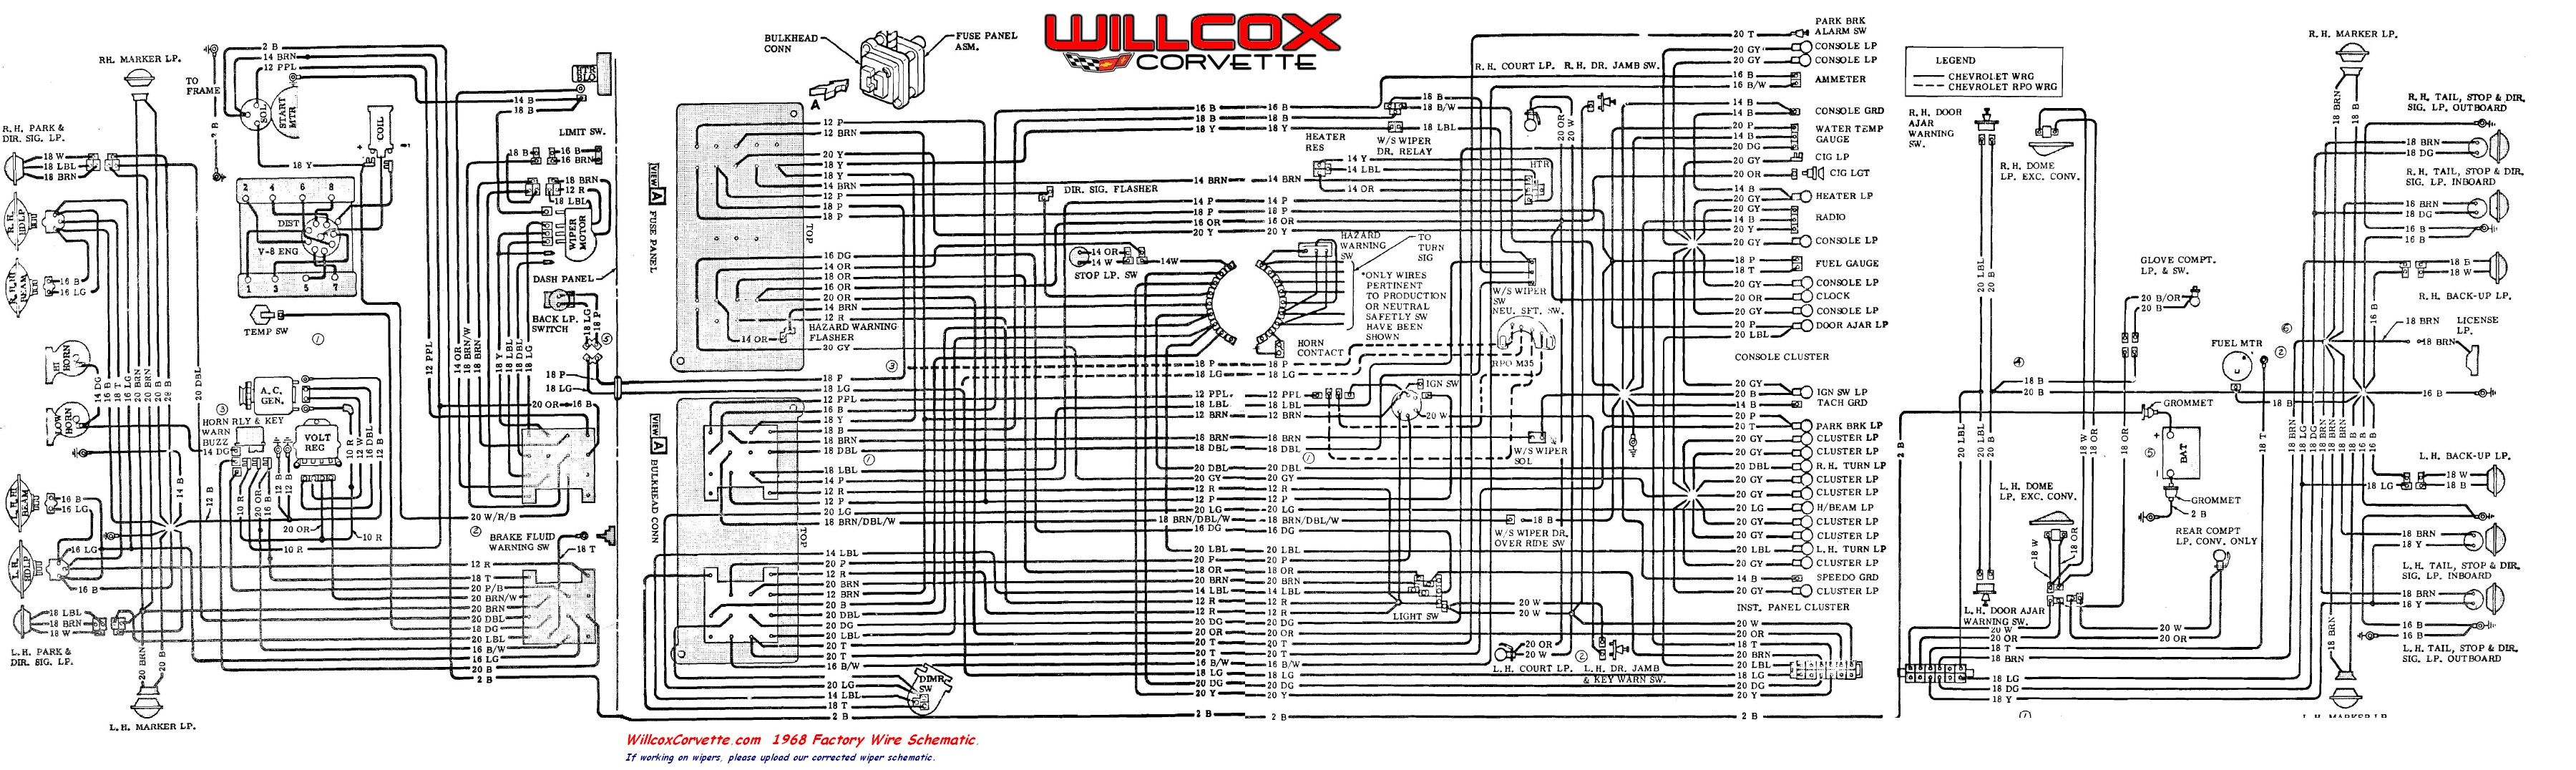 1984 Corvette Wiper Wiring Circuit Connection Diagram \u2022 1968 Chevy Wiper  Motor Wiring Diagram 1984 Camaro Wiper Diagram